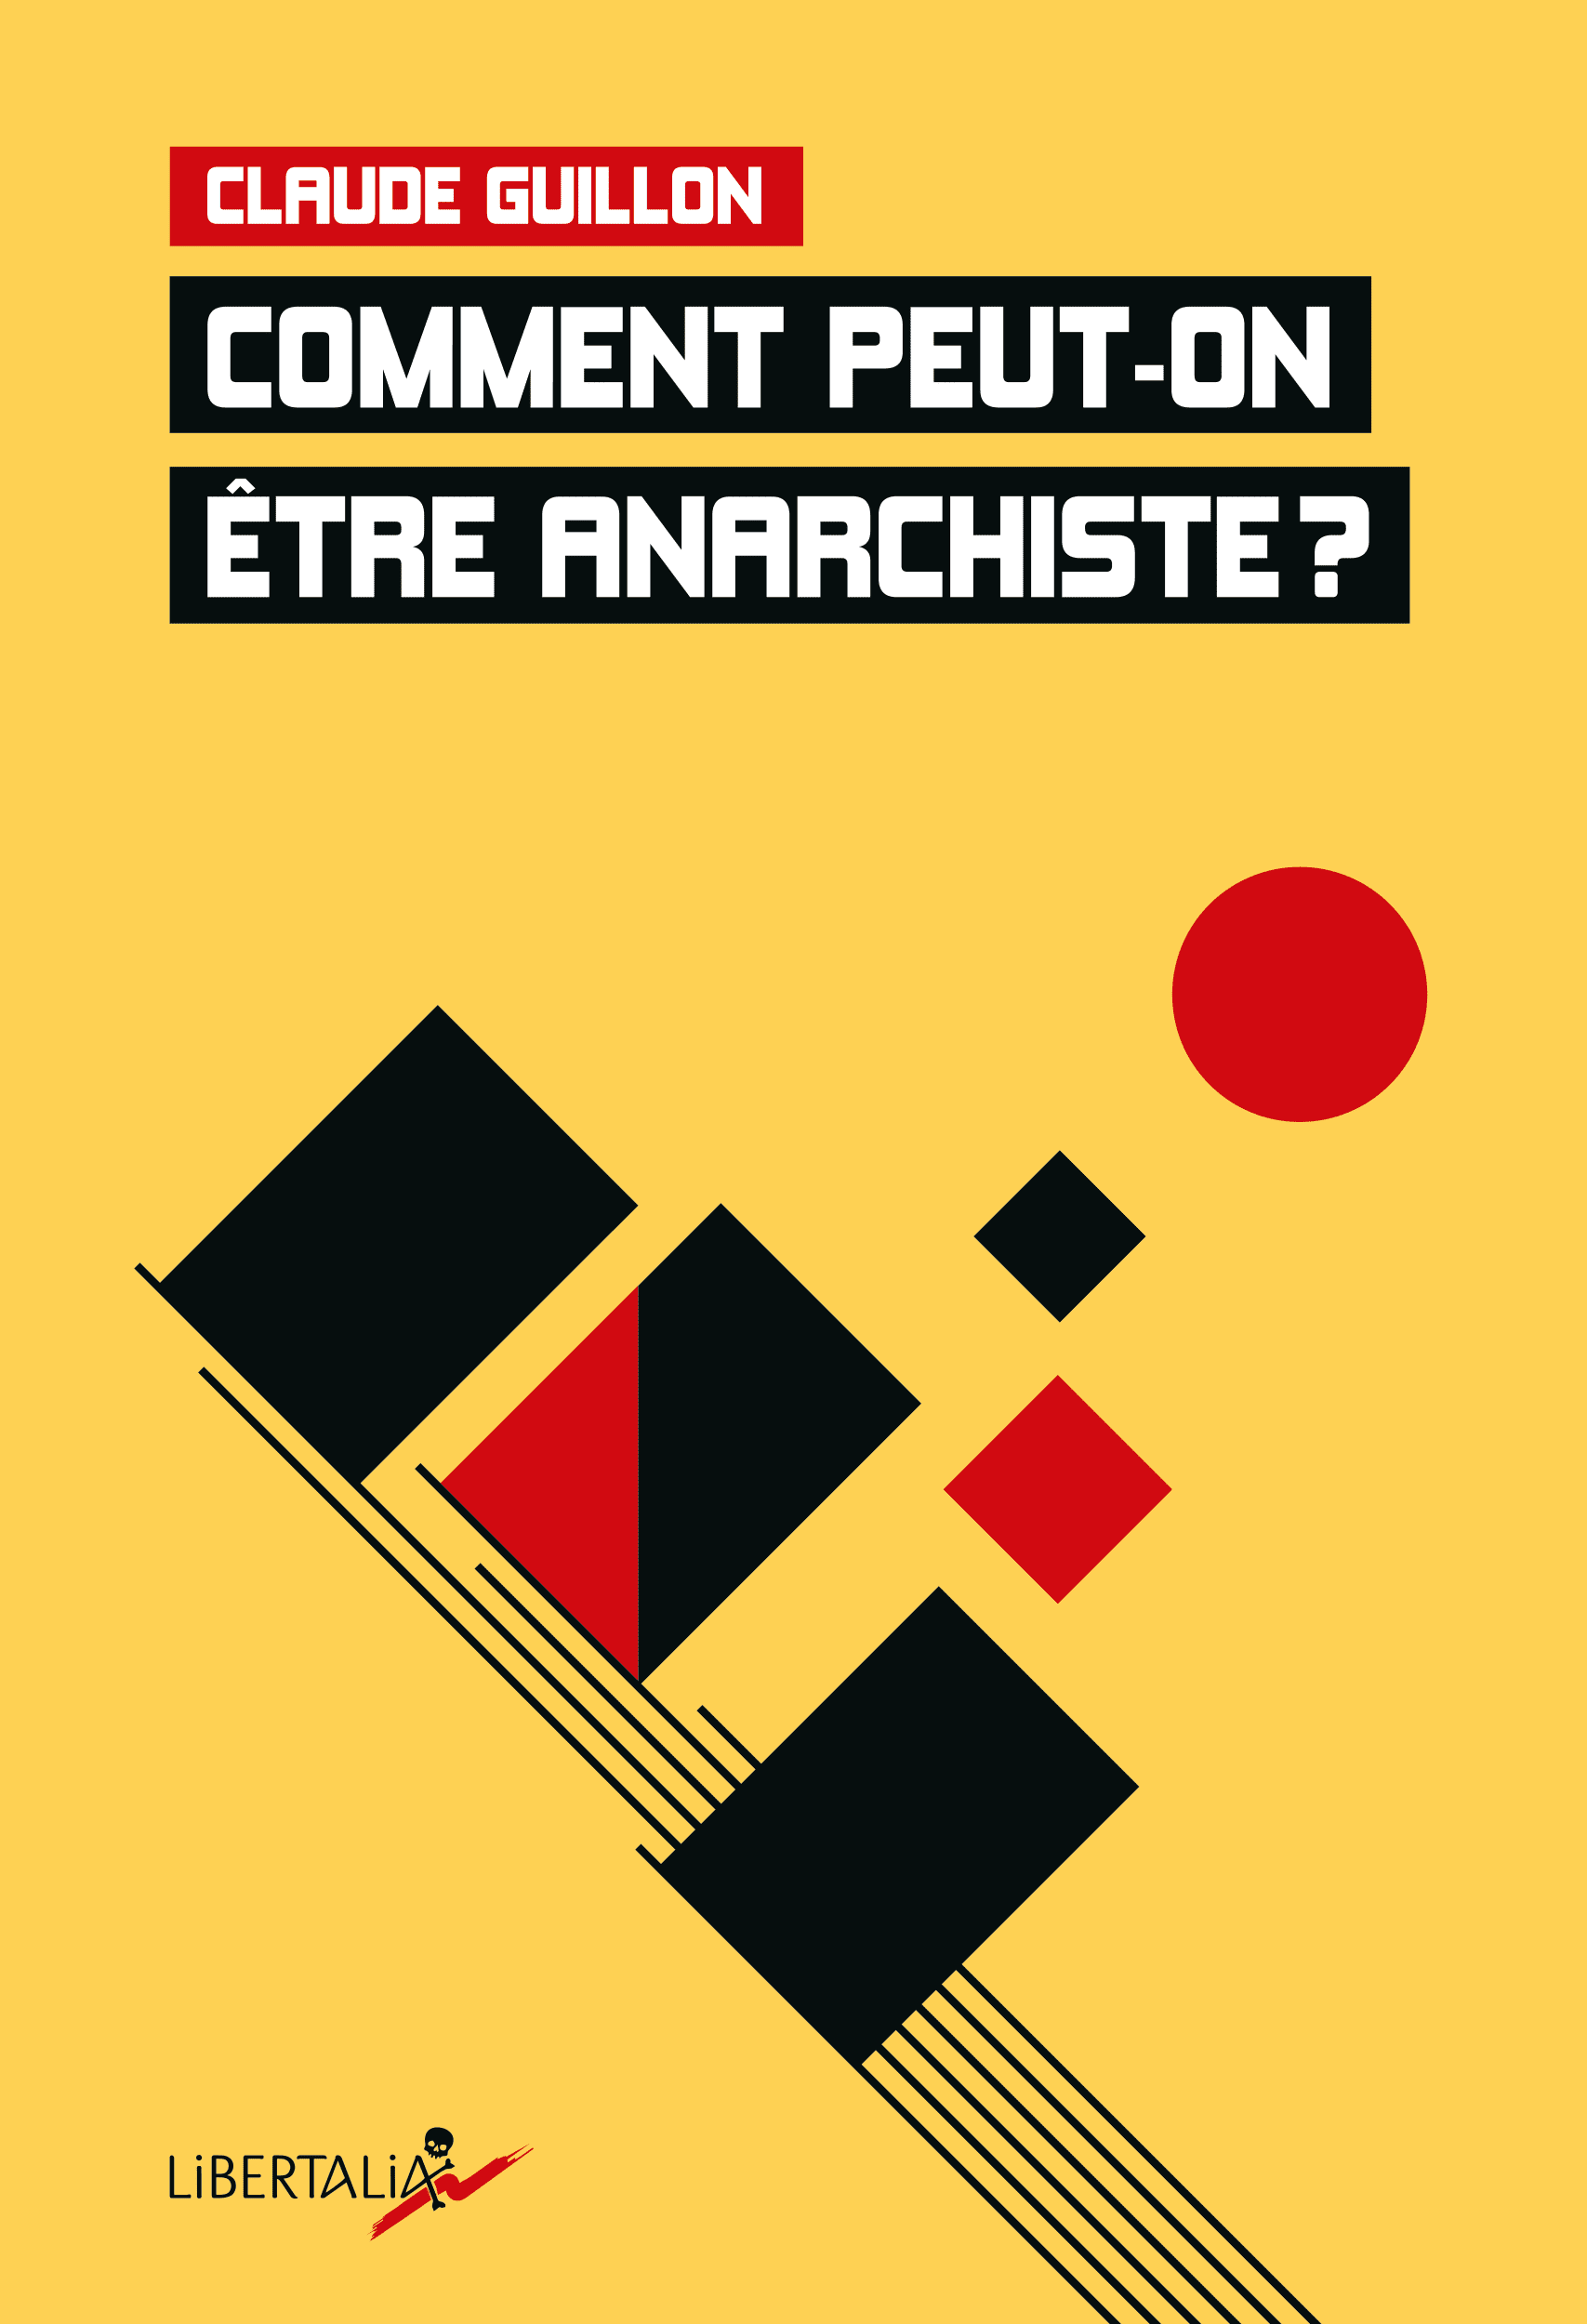 12 libertalia comment peut on etre anarchiste bruno bartkowiak illustrateur ariege occitanie